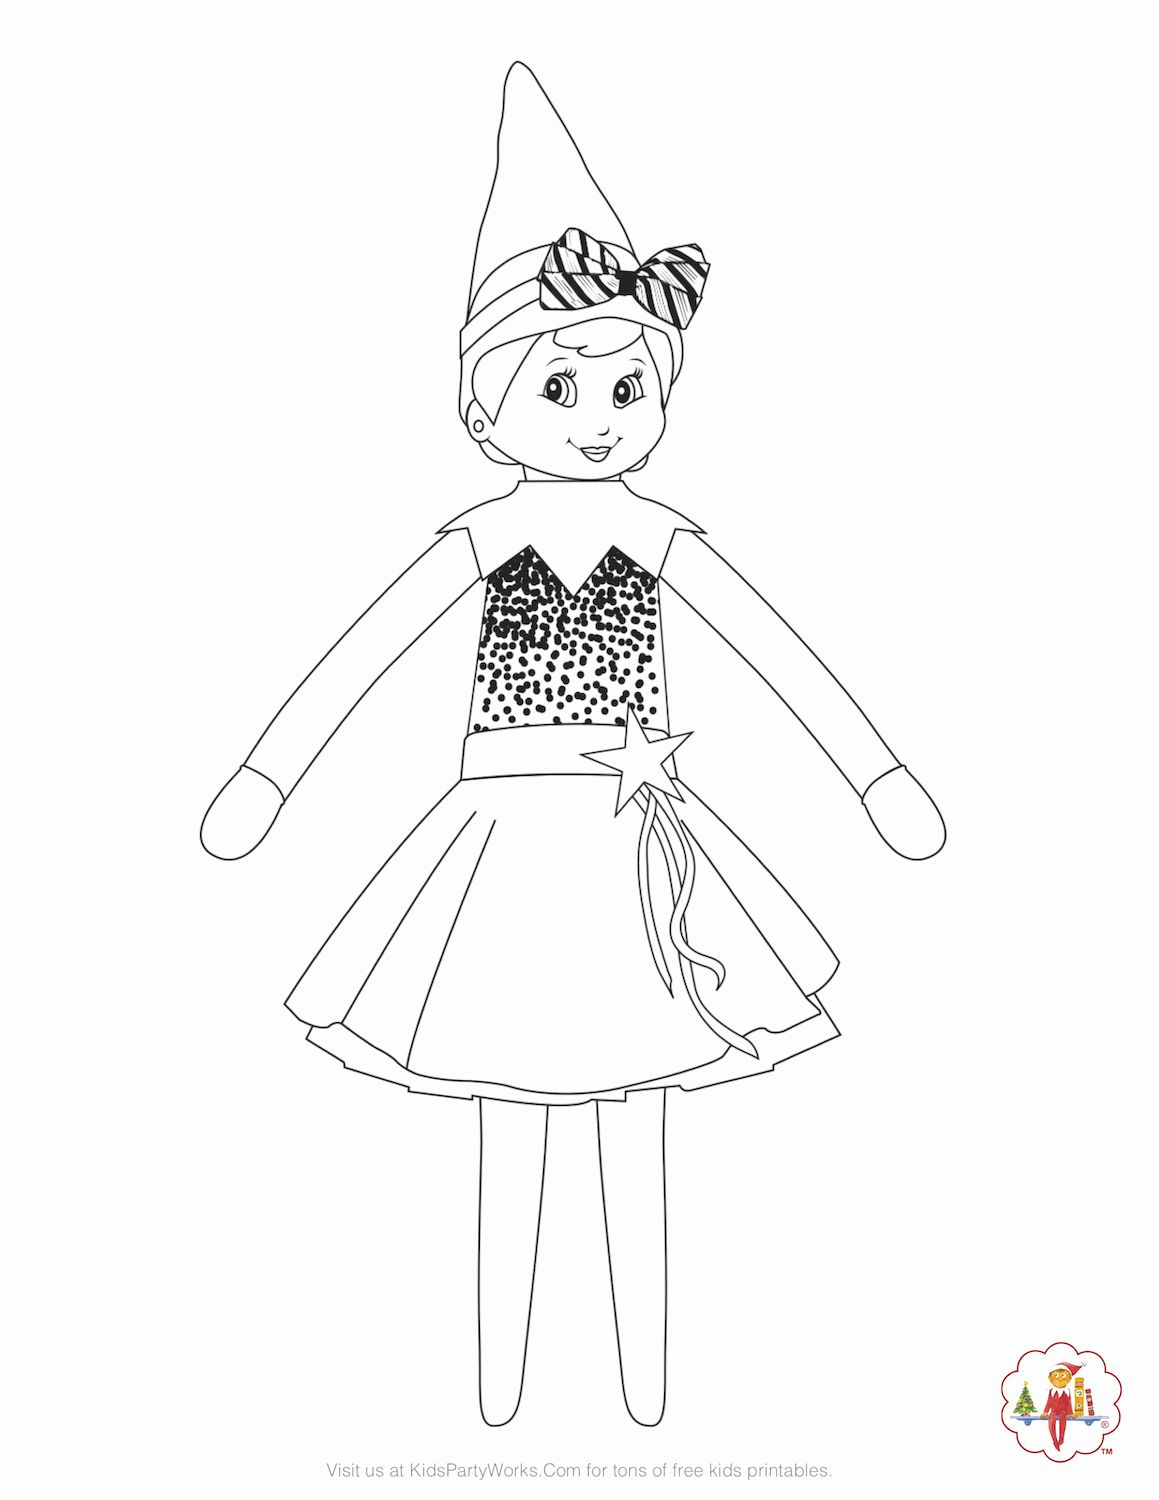 Elf On The Shelf Coloring Page Elegant Girl Elf On The Shelf Coloring Page She S Ready For The Girl Elf Christmas Coloring Pages Free Christmas Coloring Pages